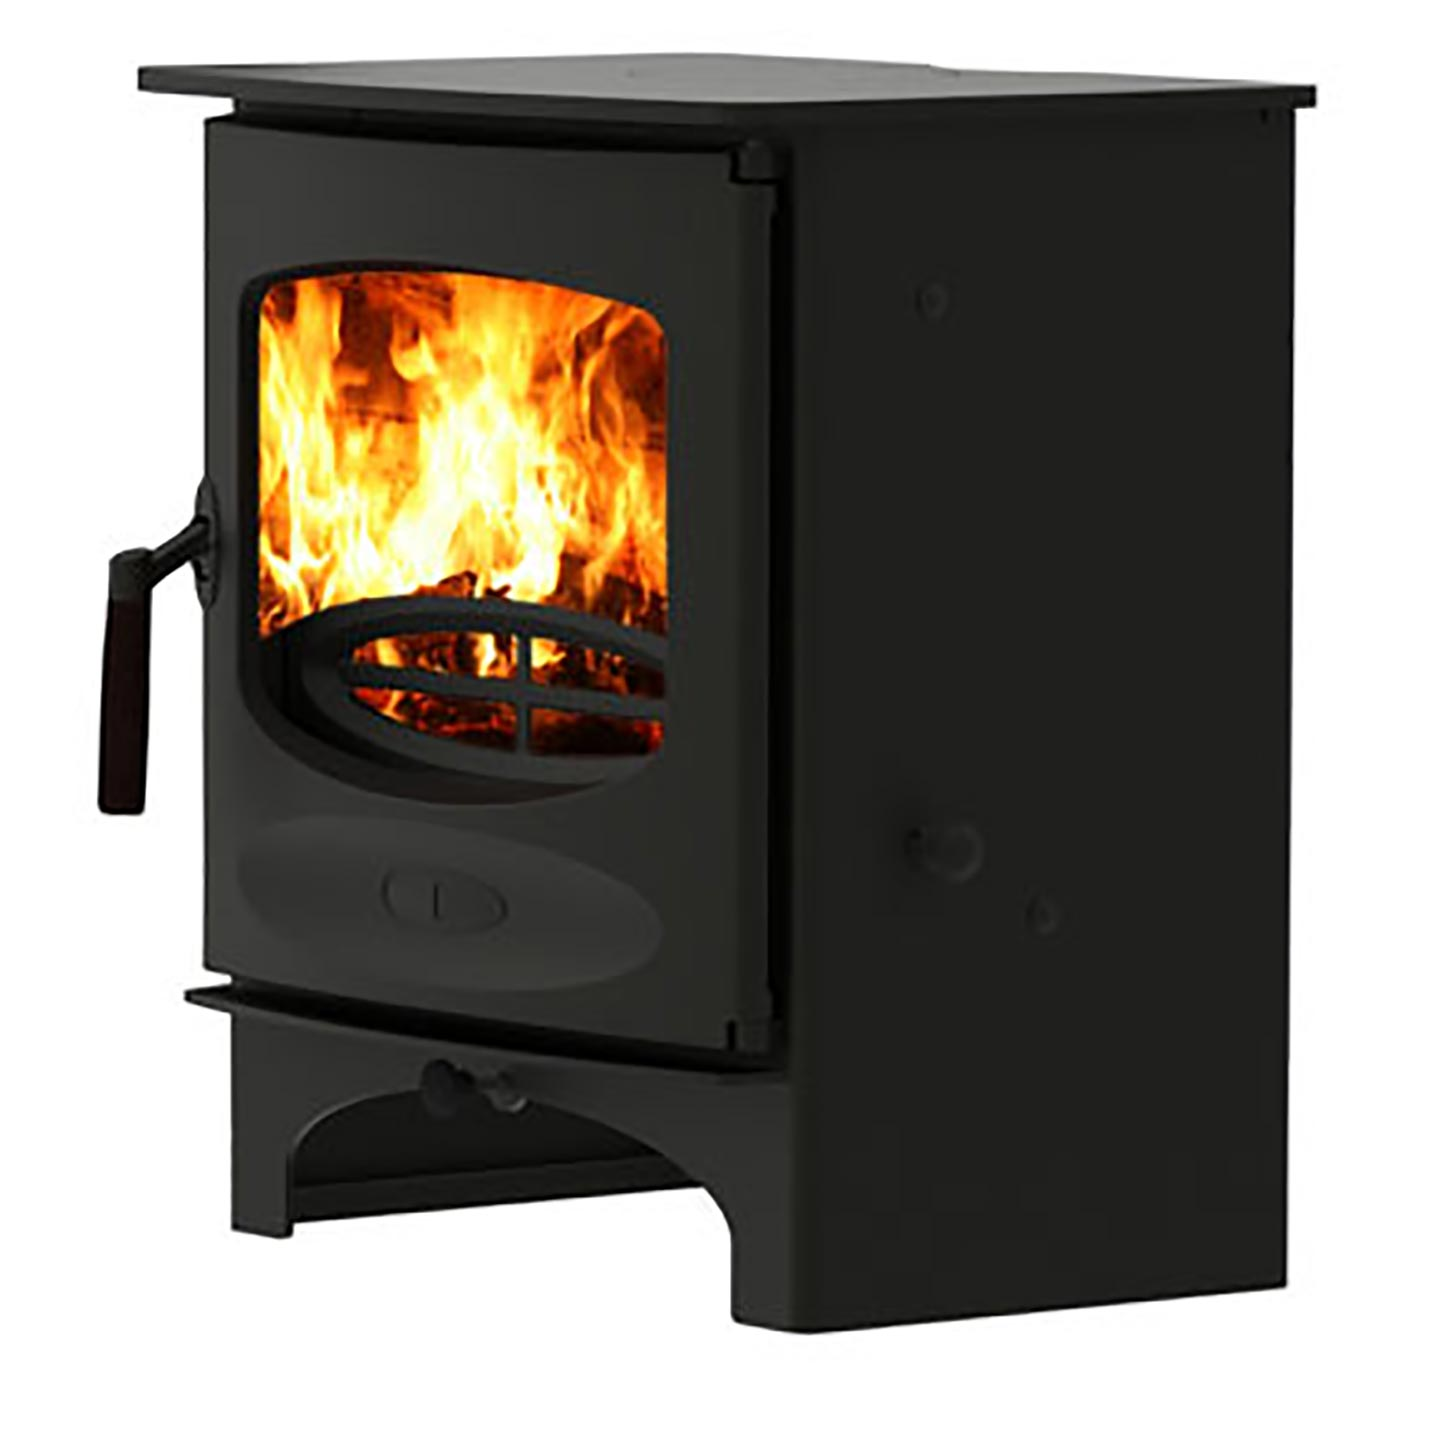 Charnwood C Five Multi Fuel Amp Wood Burning Stove The